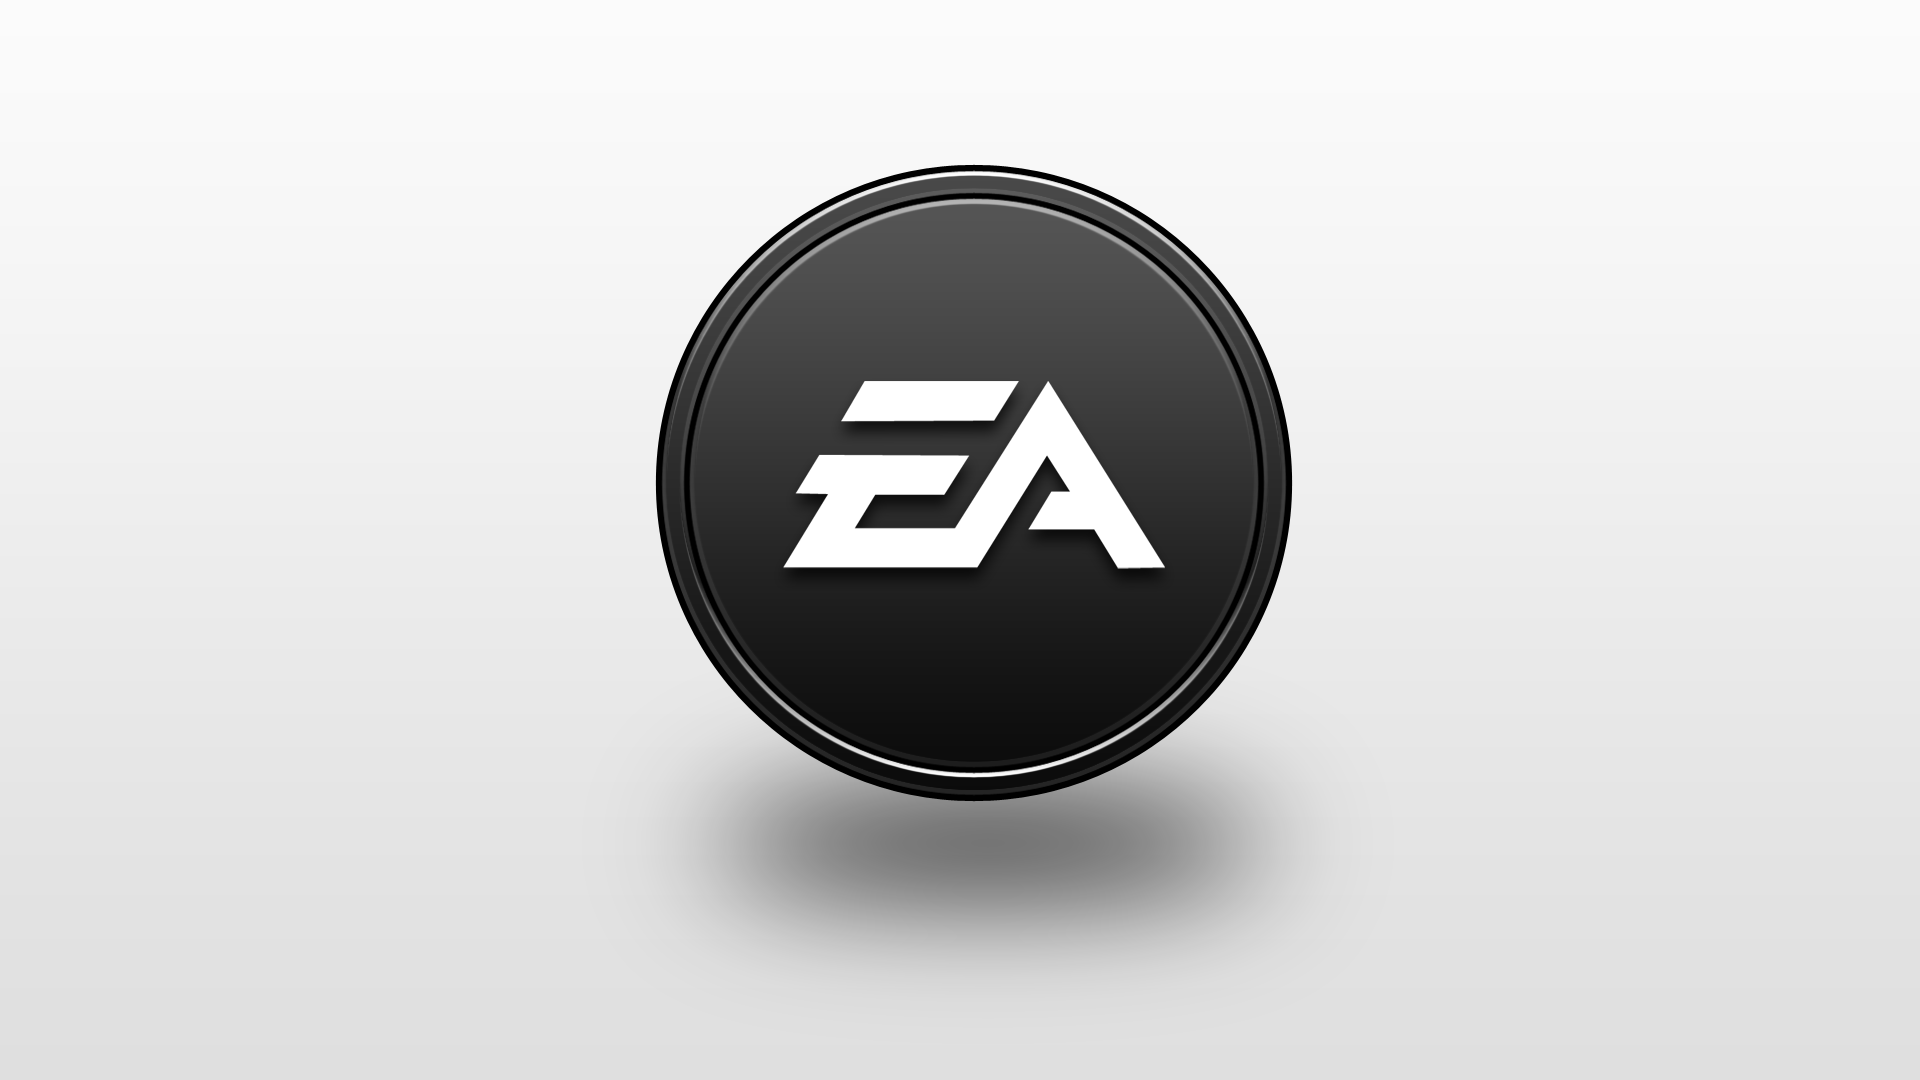 Mark Your Calendars, EA has Announced the Date and Time for its E3 Press Conference | DualShockers